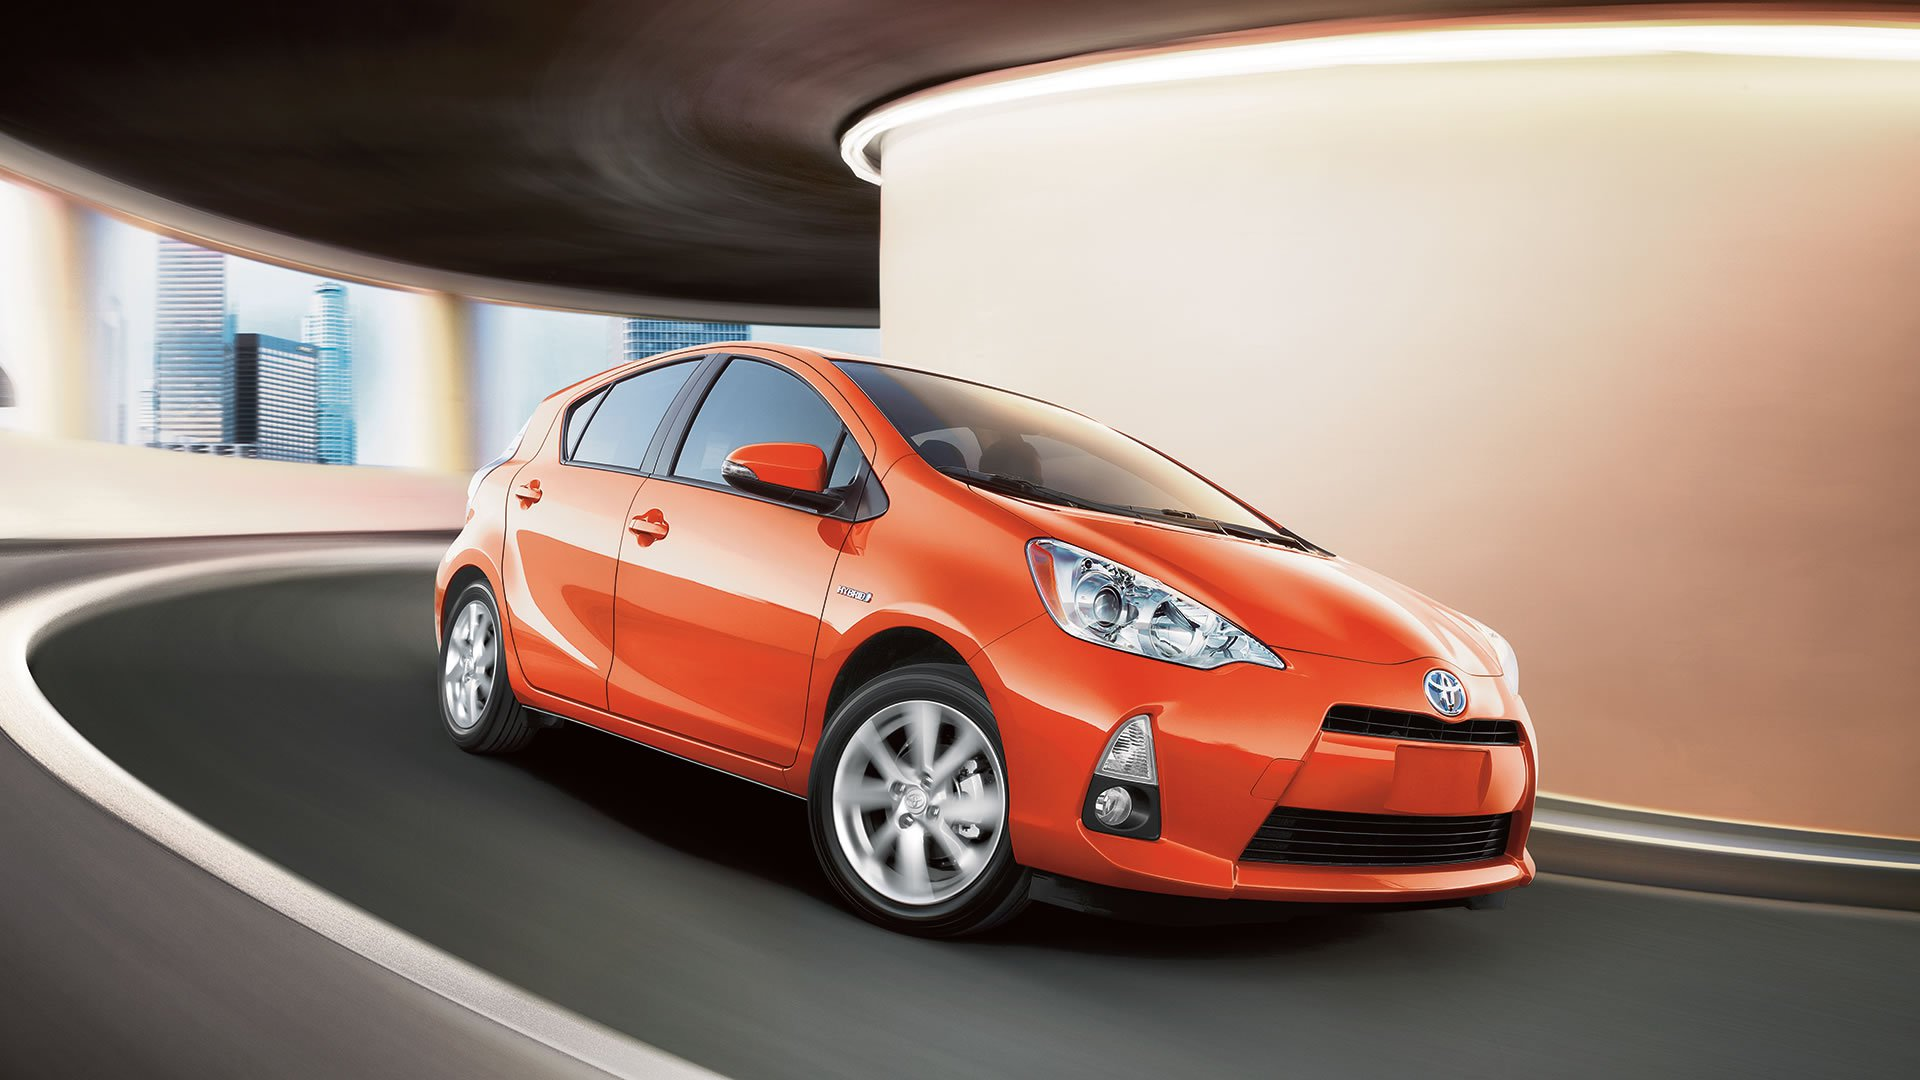 Toyota Dealer Serving Ames IA Sales Lease Specials Service - Where is the nearest toyota dealership